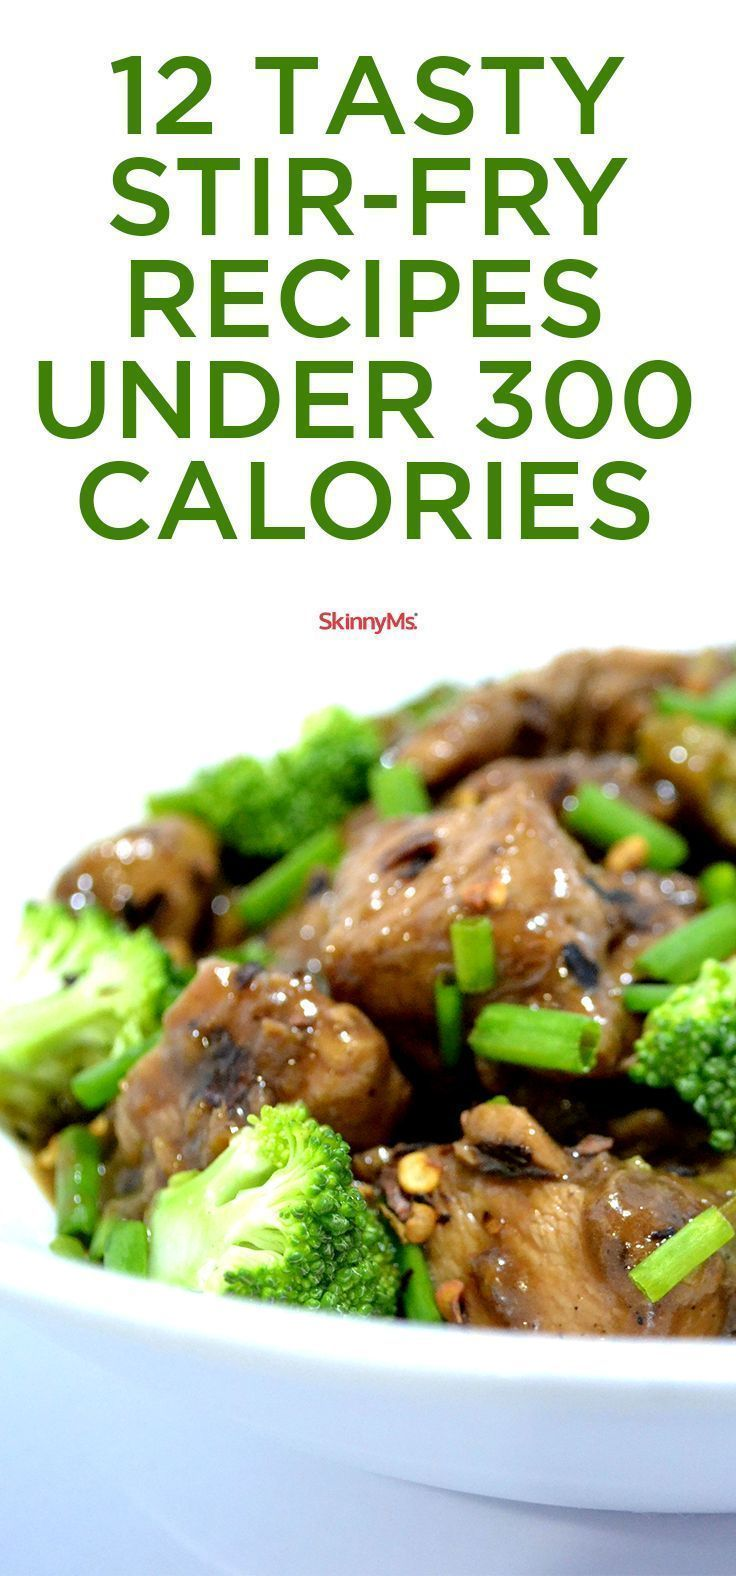 12 tasty stir fry recipes under 300 calories 300 calories stir 12 tasty stir fry recipes under 300 calories 300 calories stir fry and tasty forumfinder Images